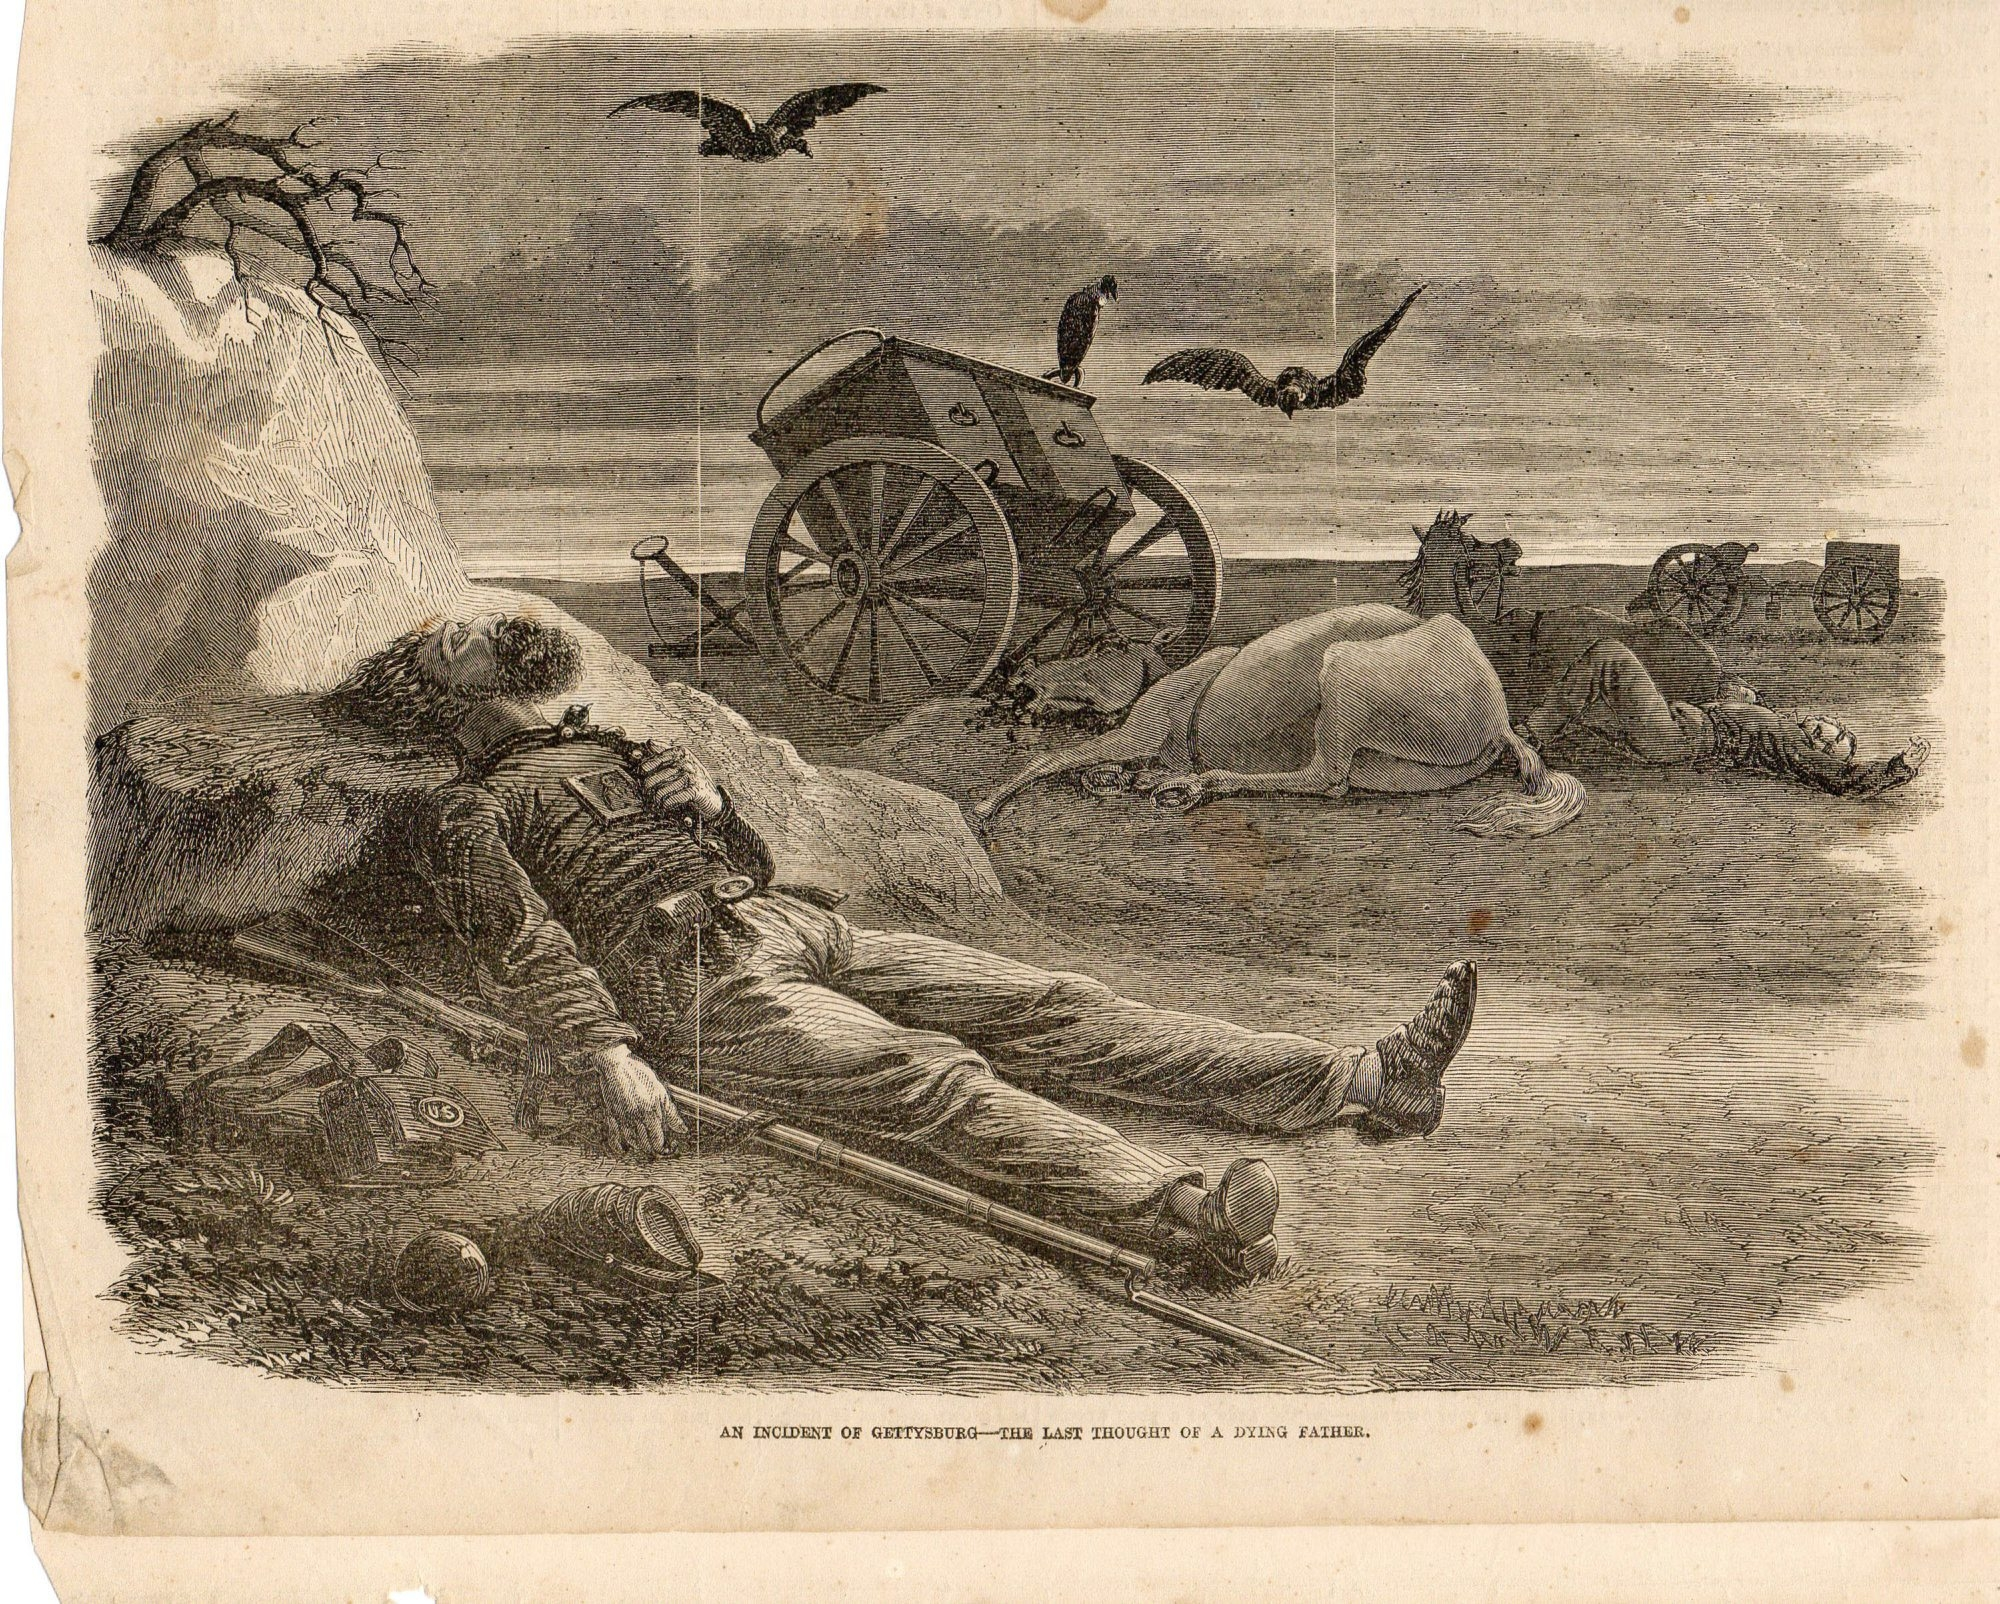 Above is an artist's depiction of Amos Humiston's death pose. The story of the Union soldier who died holding the ambrotype of his childrenand the quest to determine his identity captured the imagination of a war-weary nation.